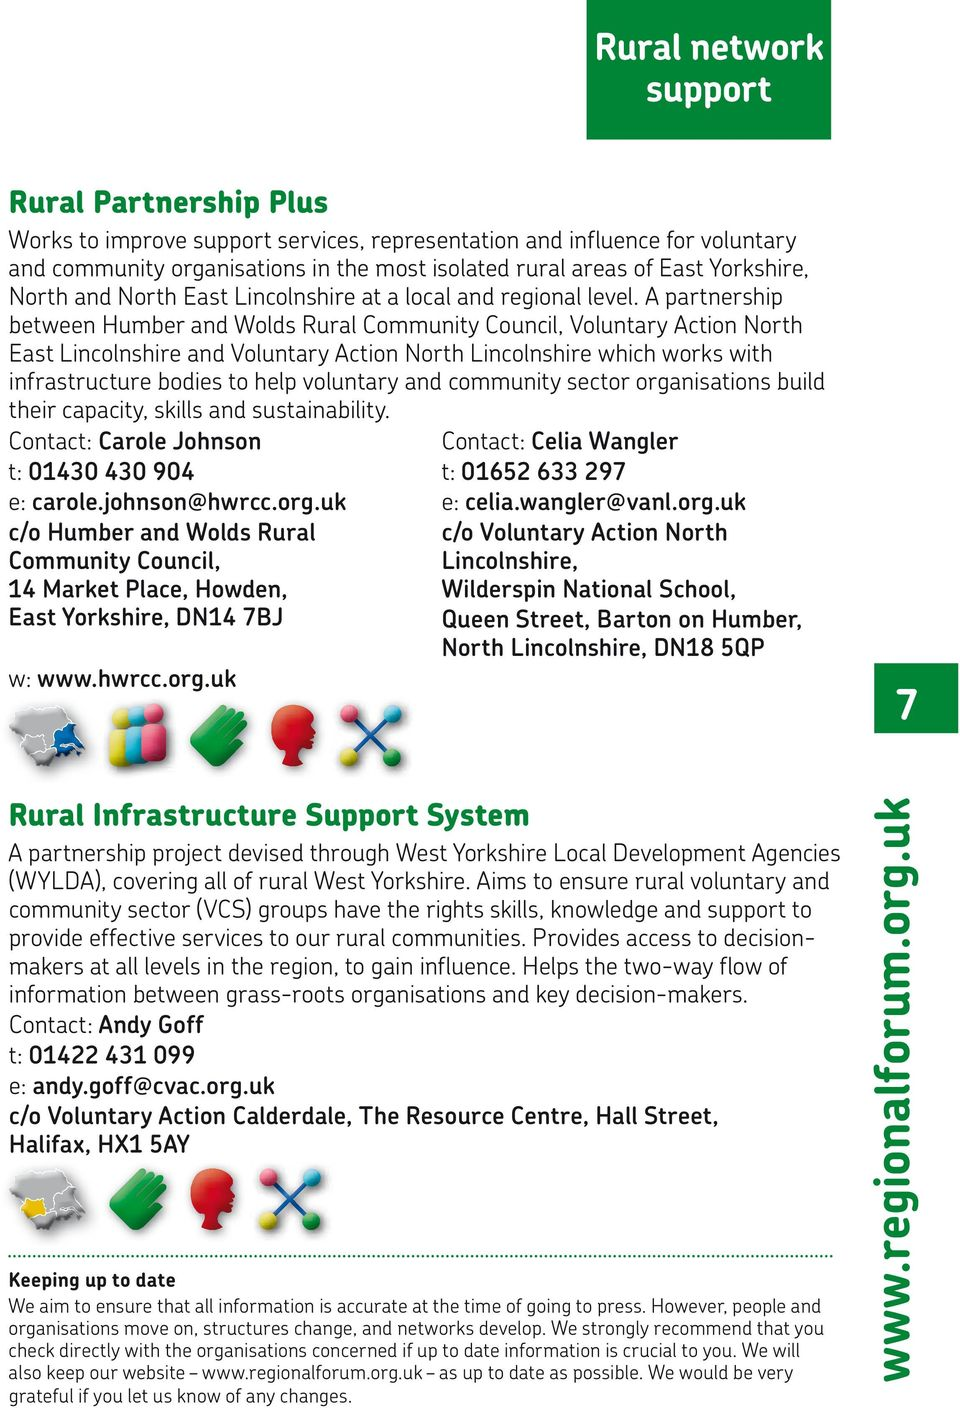 A partnership between Humber and Wolds Rural Community Council, Voluntary Action North East Lincolnshire and Voluntary Action North Lincolnshire which works with infrastructure bodies to help